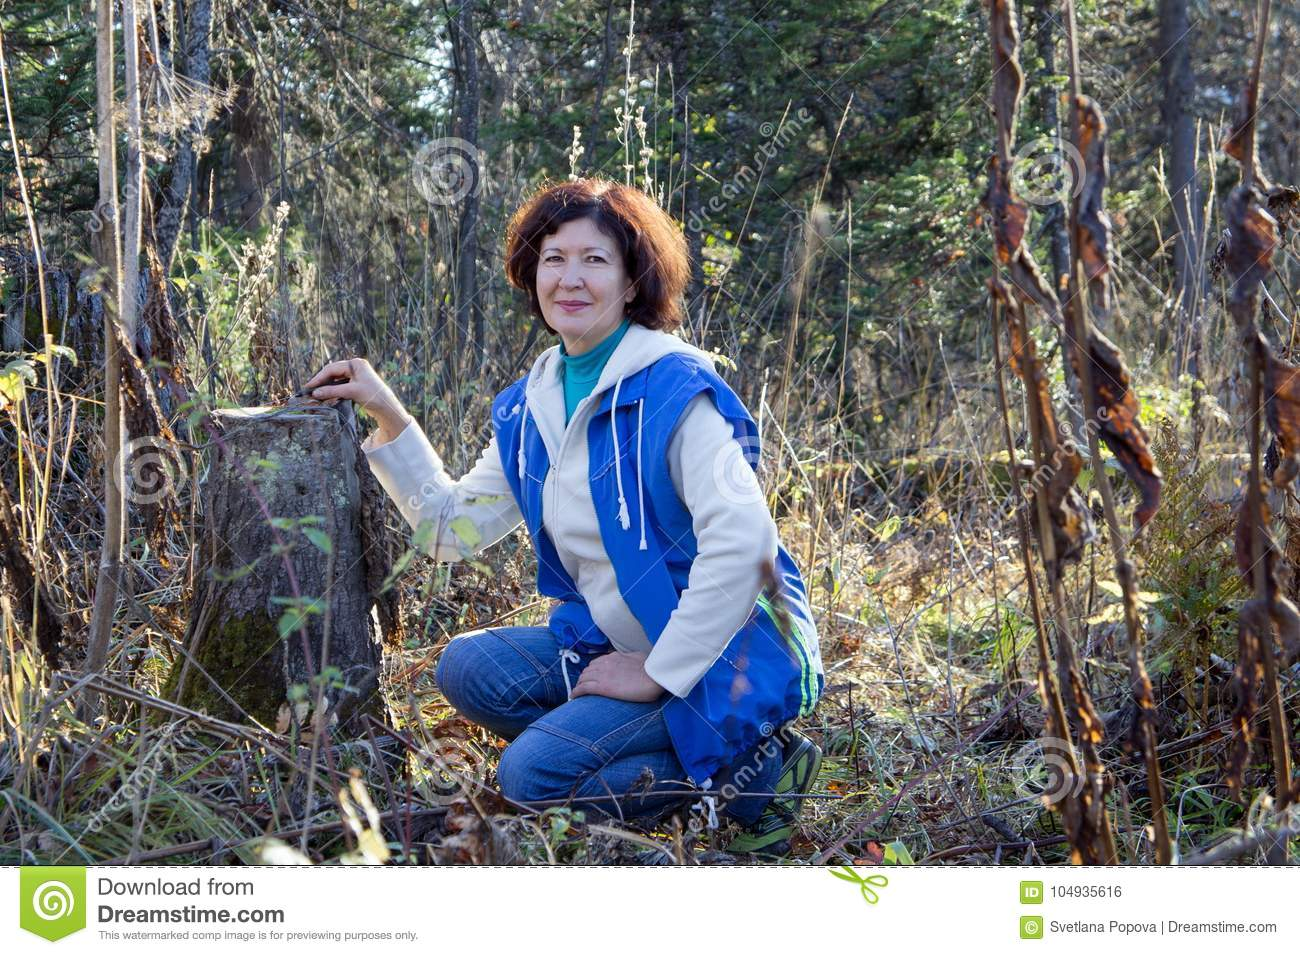 A happy woman sits beside the stump in the autumn forest.